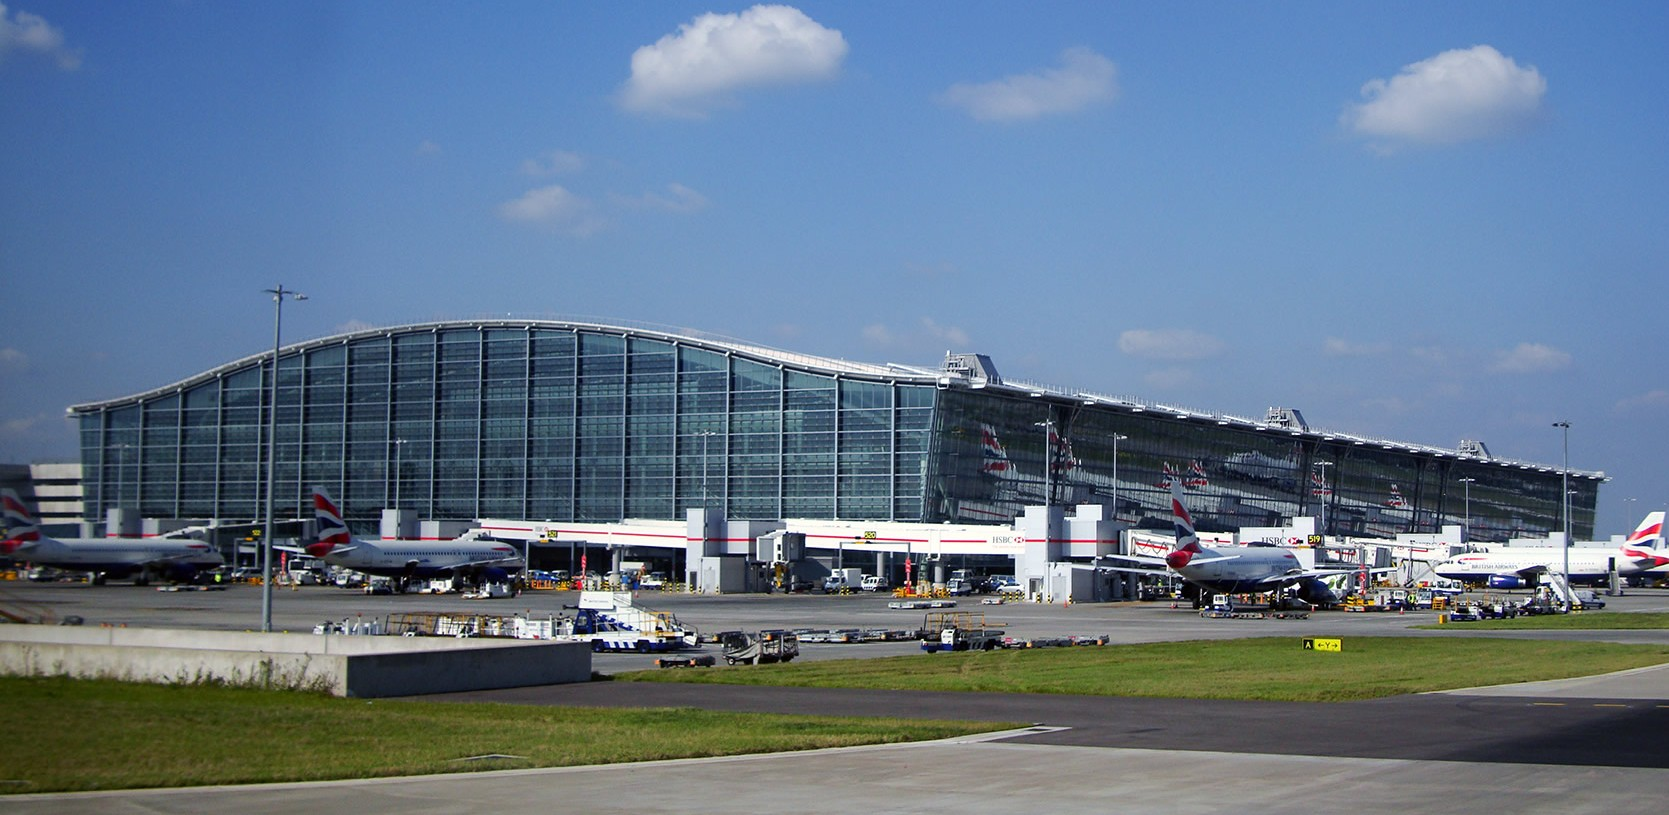 """Heathrow T5"" by Warren Rohner - Flickr. Licensed under CC BY-SA 2.0 via Wikimedia Commons."